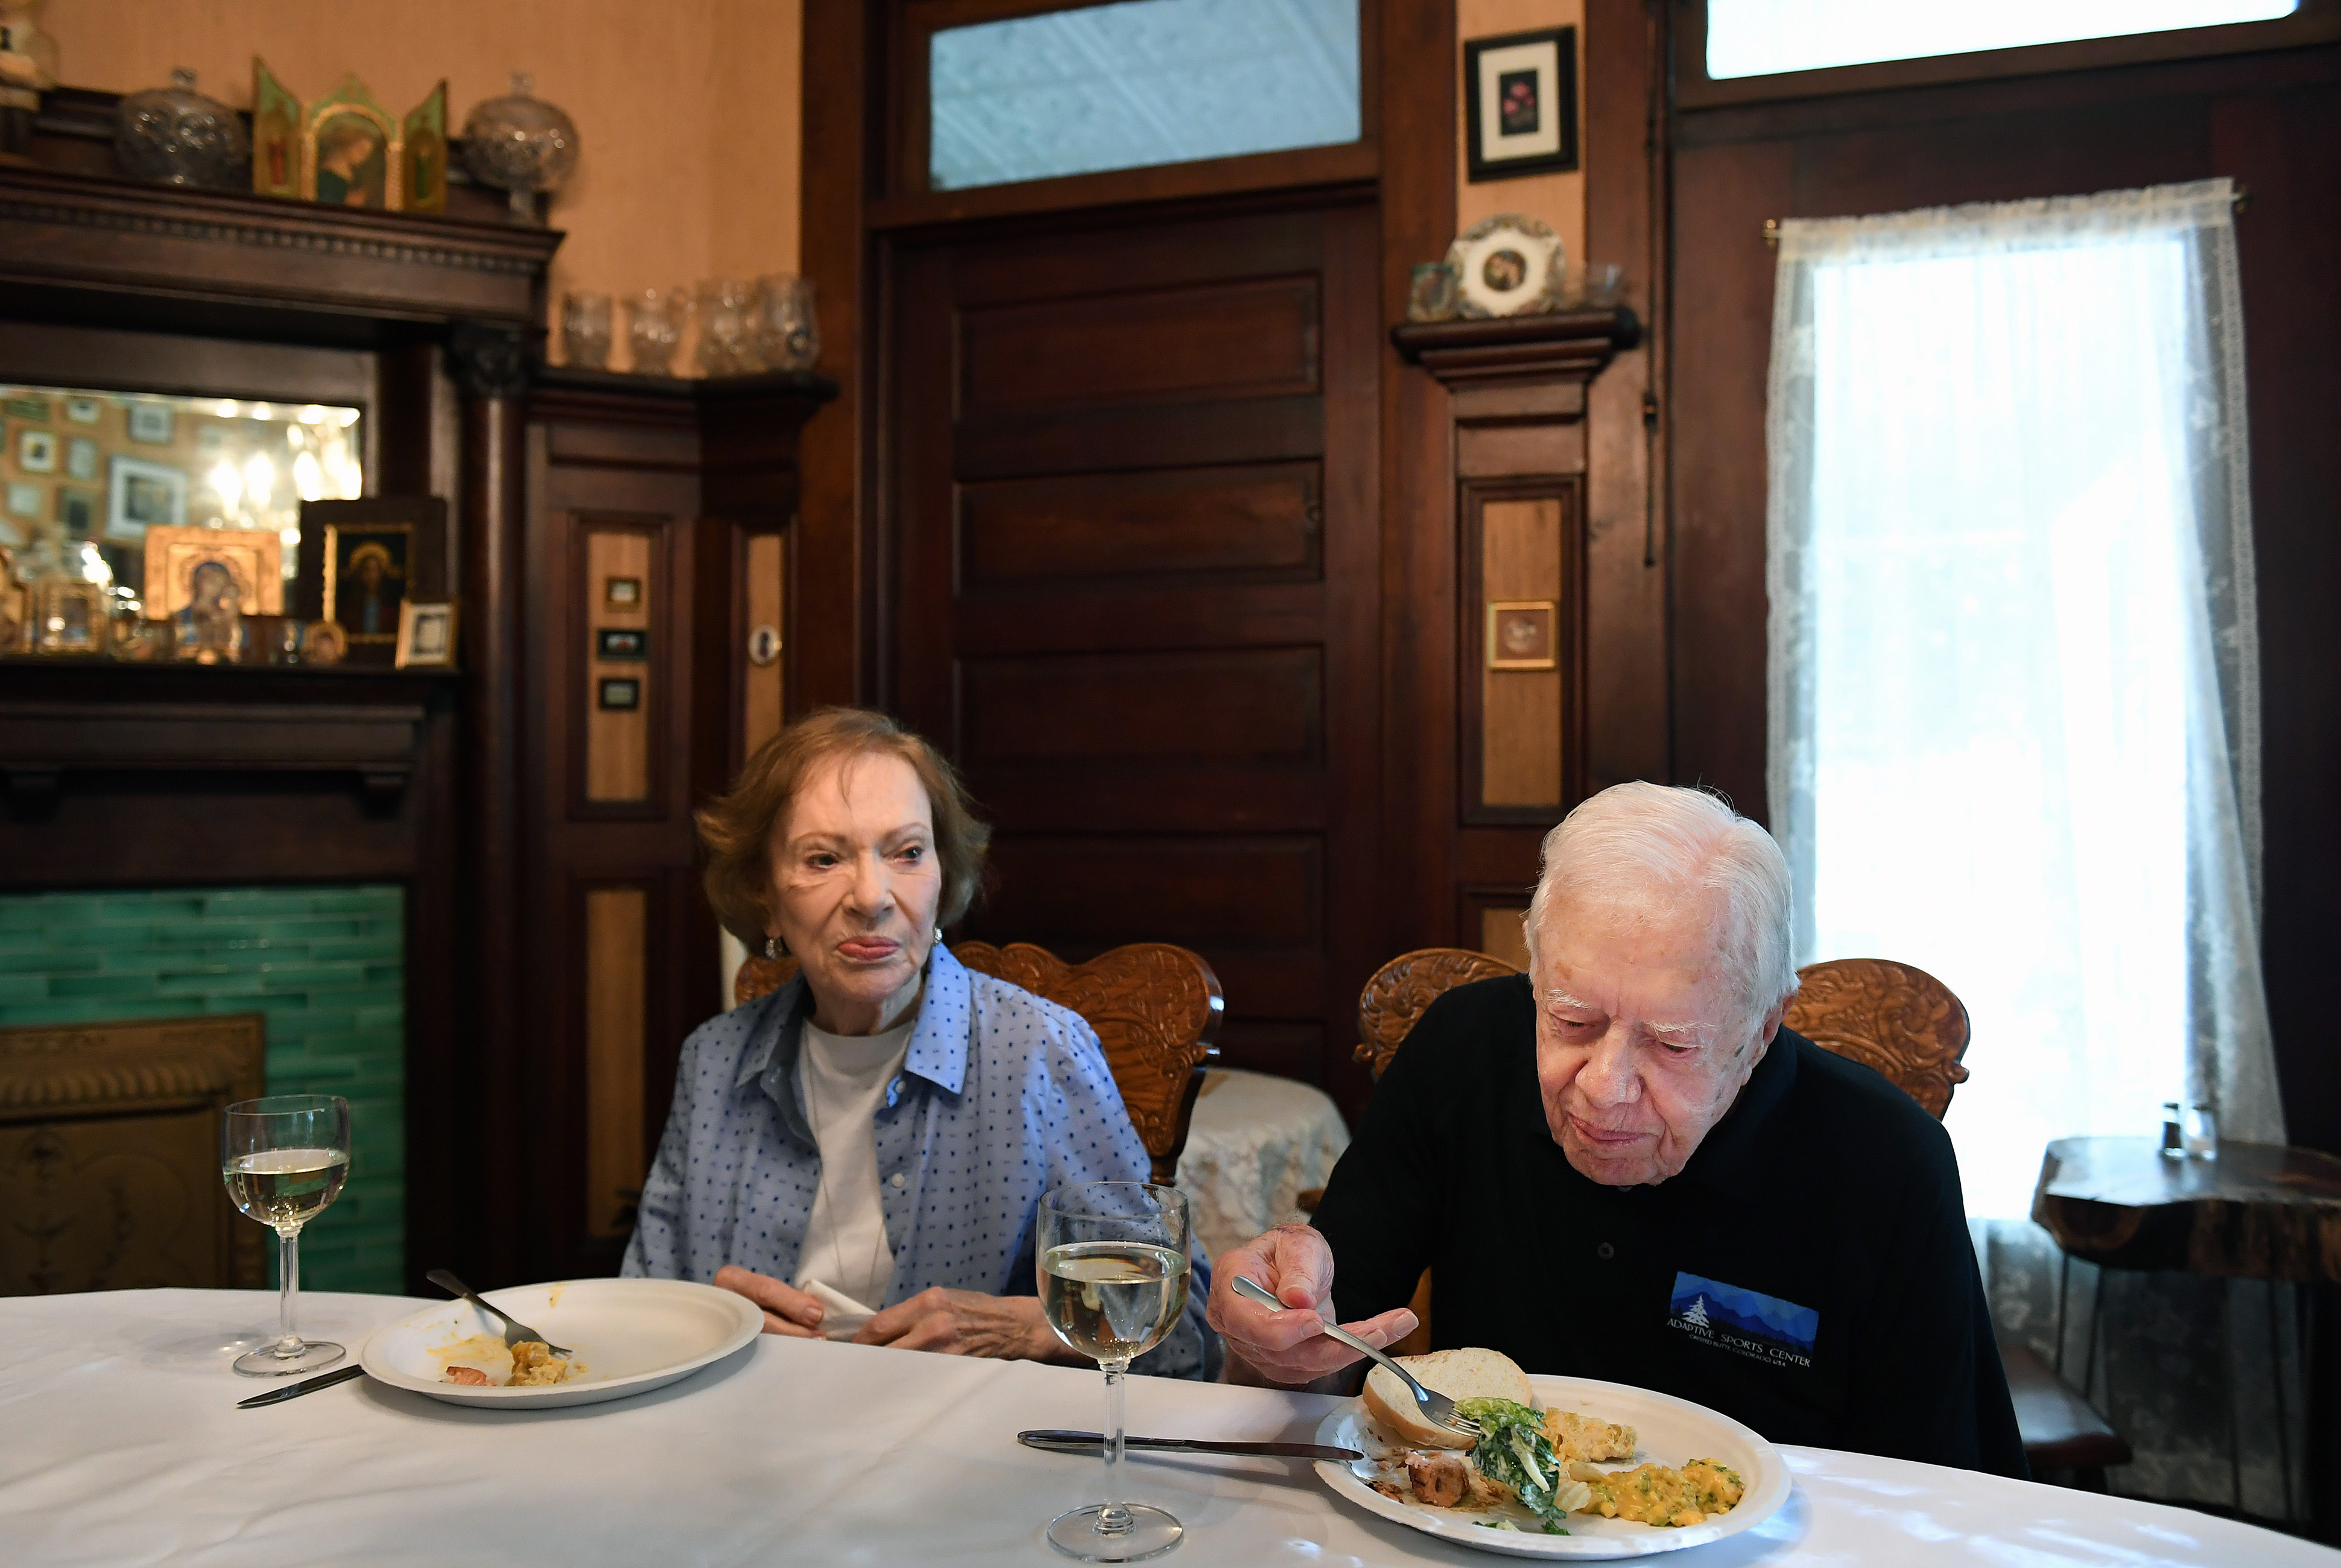 jimmy carter and wife rosalynn carter